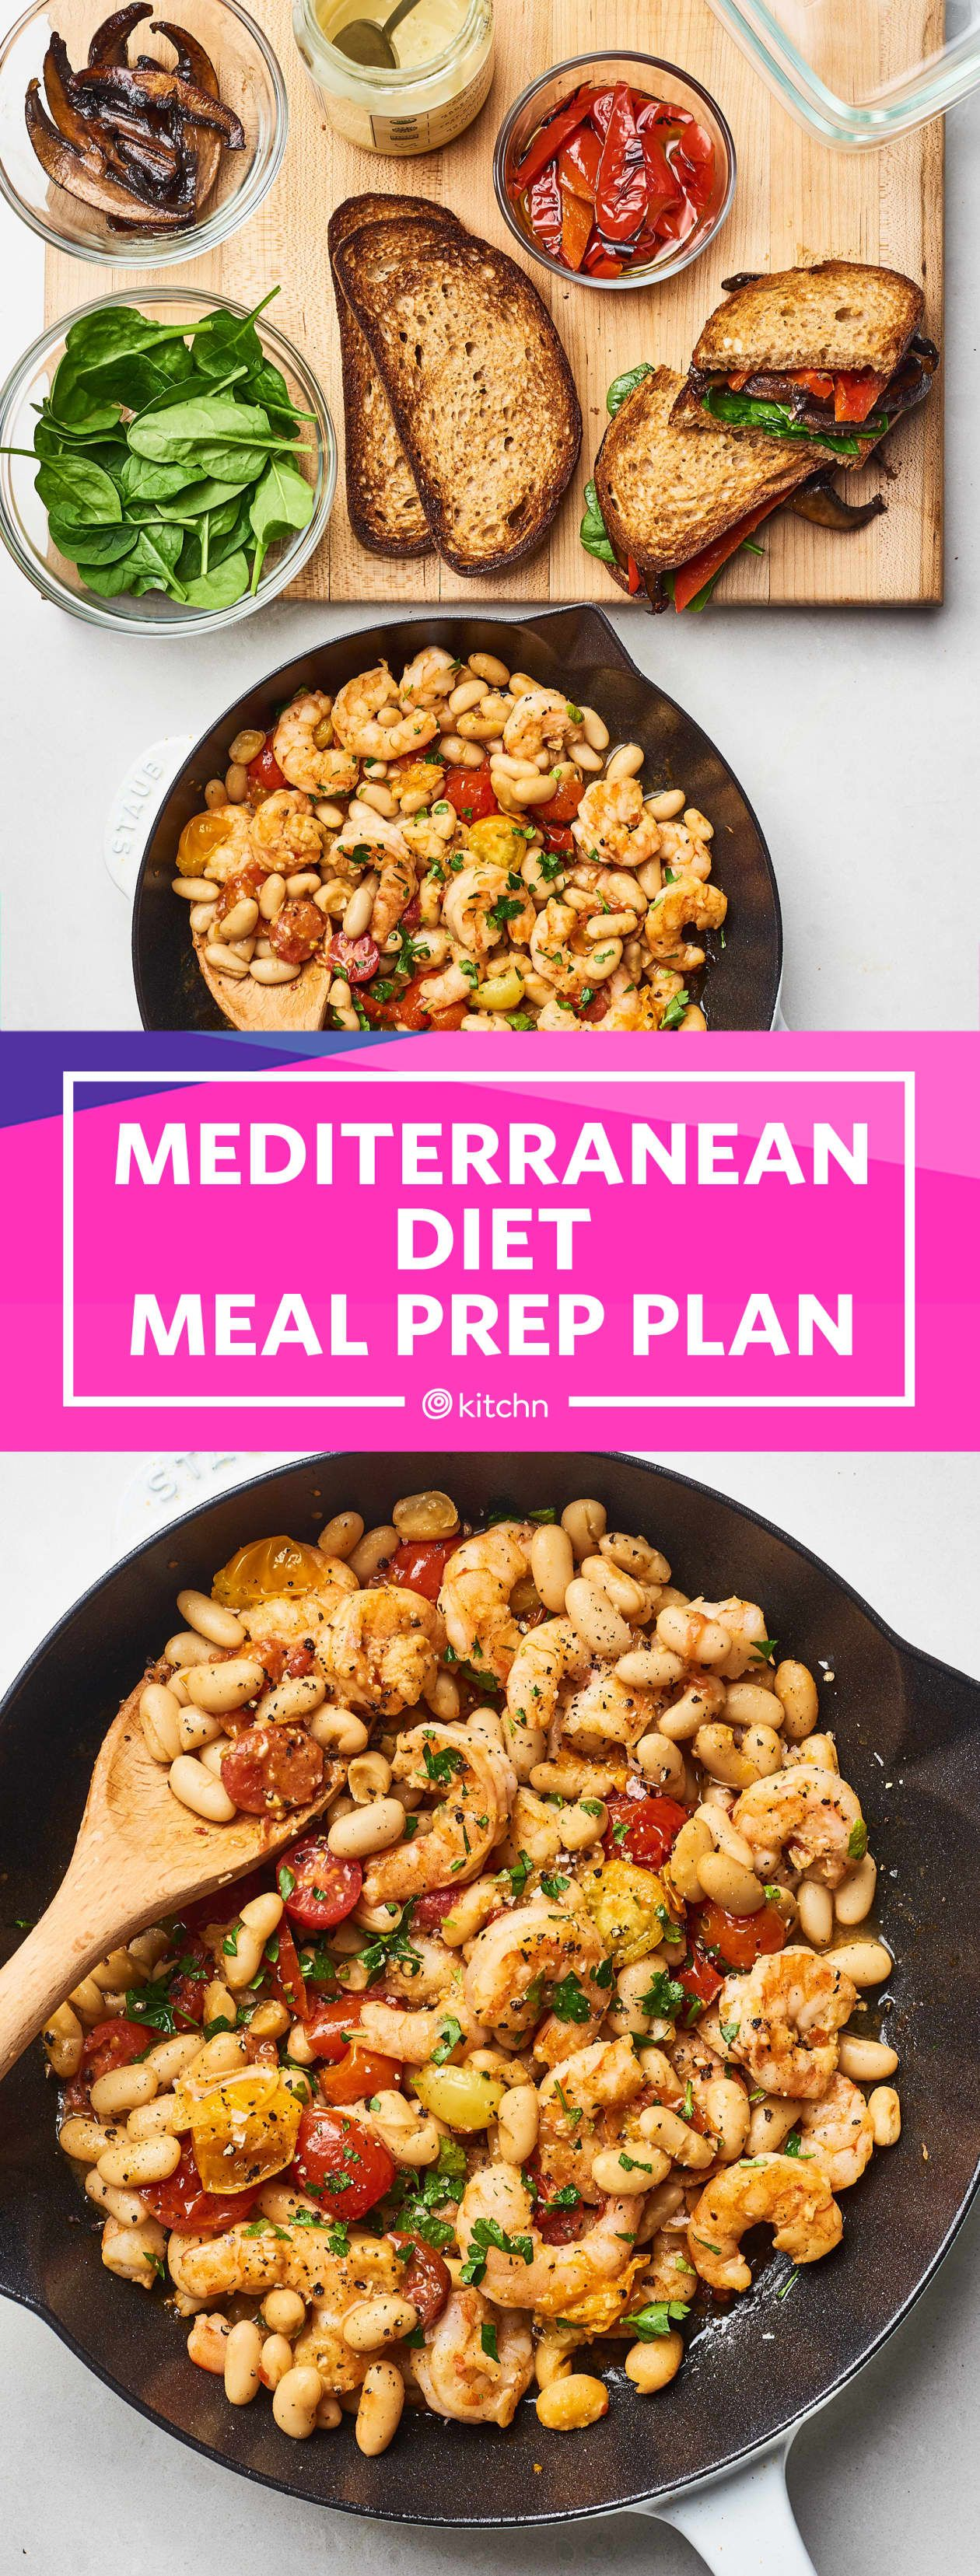 Meal Prep Plan: How I Prep a Week of Easy Mediterranean Diet Meals #ketomealplan